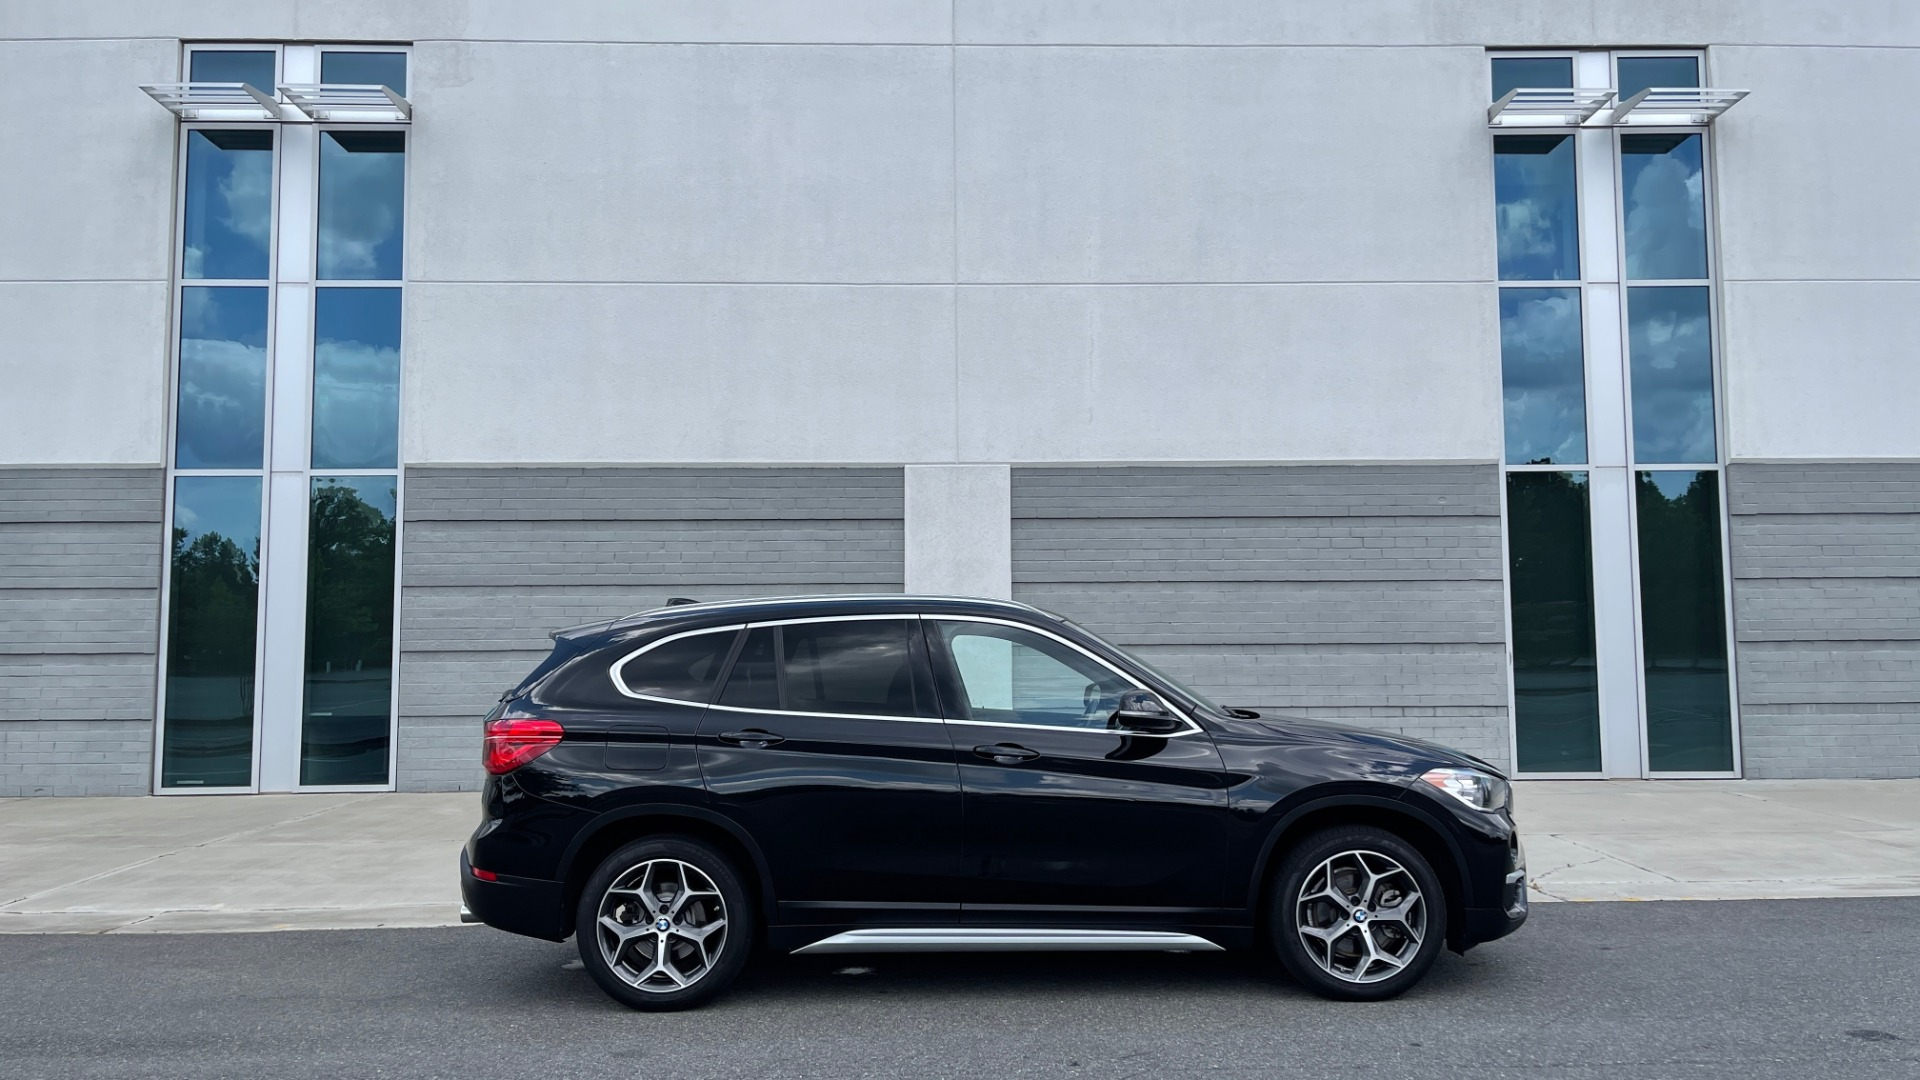 Used 2018 BMW X1 XDRIVE28I / NAV / CONV PKG / HTD STS / PANO-ROOF / REARVIEW for sale $29,995 at Formula Imports in Charlotte NC 28227 7